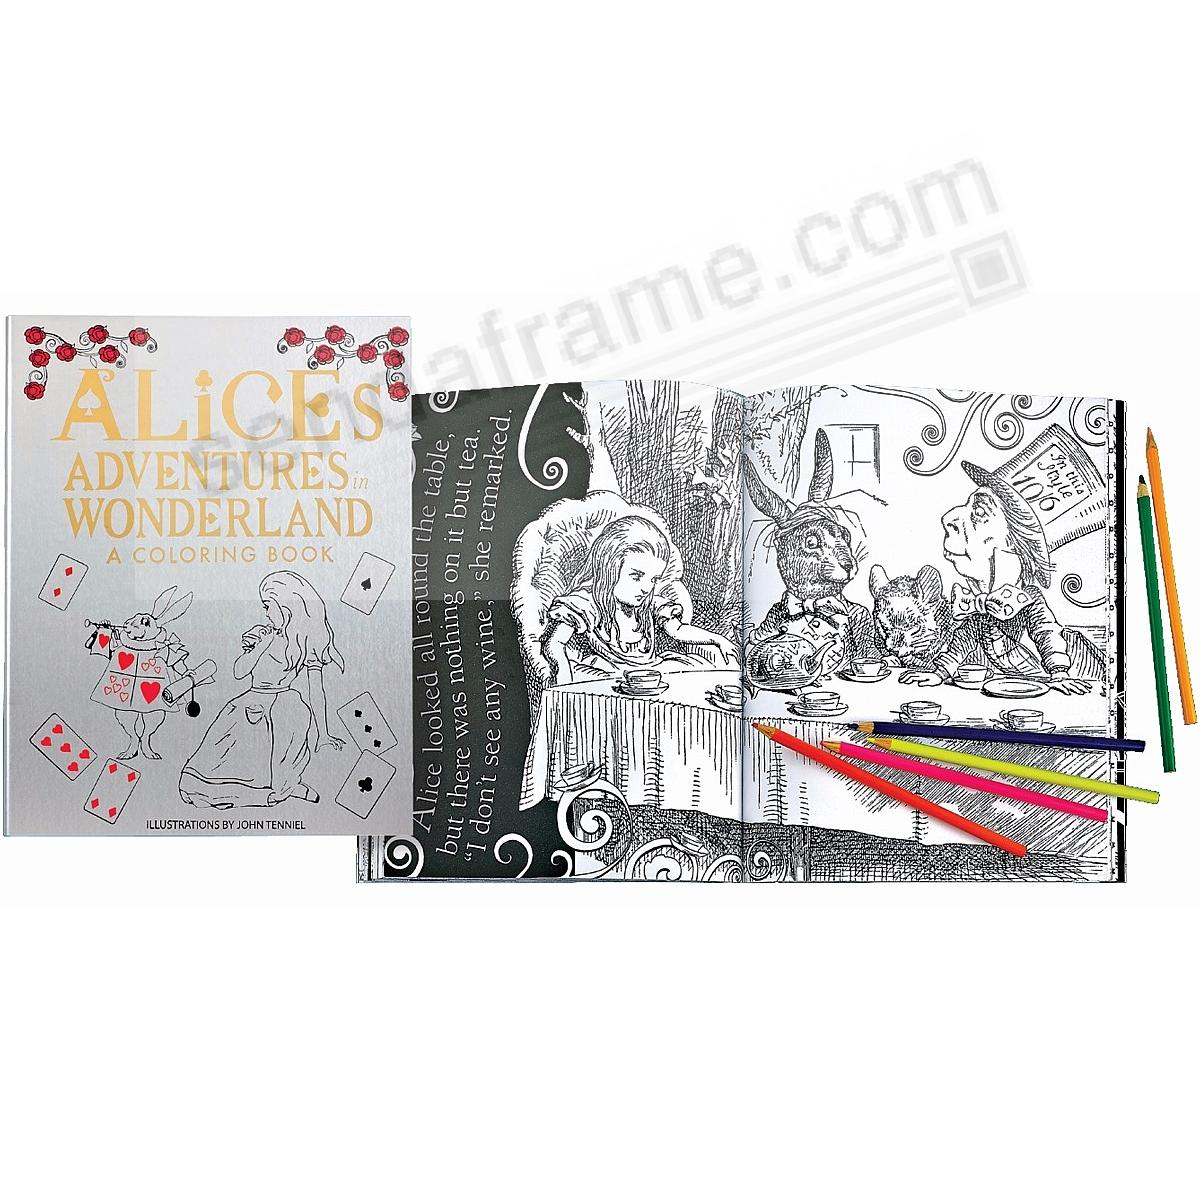 Alice's Adventures in Wonderland Coloring Book Special Edition in Luxe Soft Leather